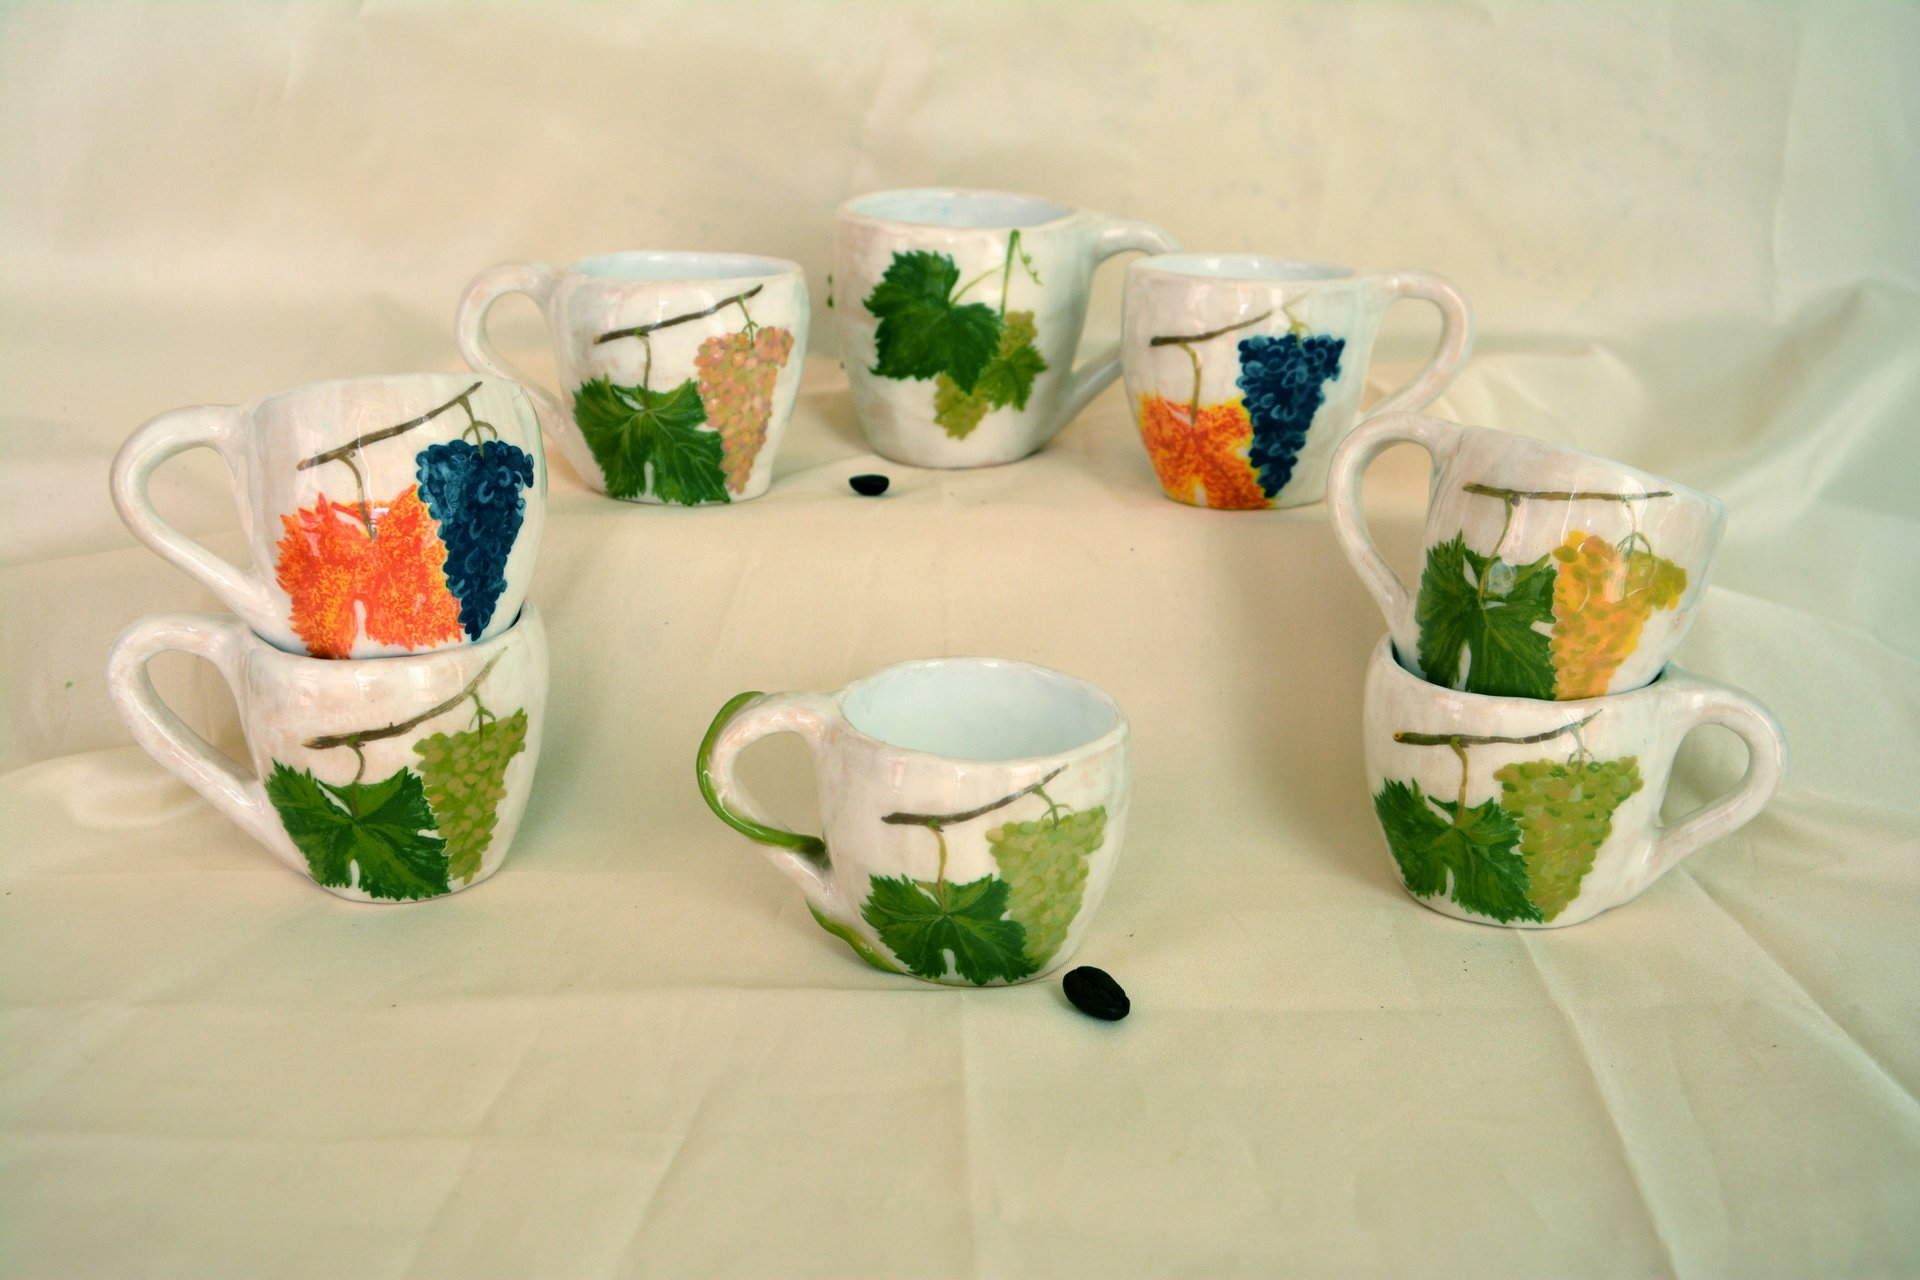 A set of white coffee cups Bunch of grapes - Cups, glasses, mugs, height - 6 cm, volume - 100 ml, photo 3 of 3.